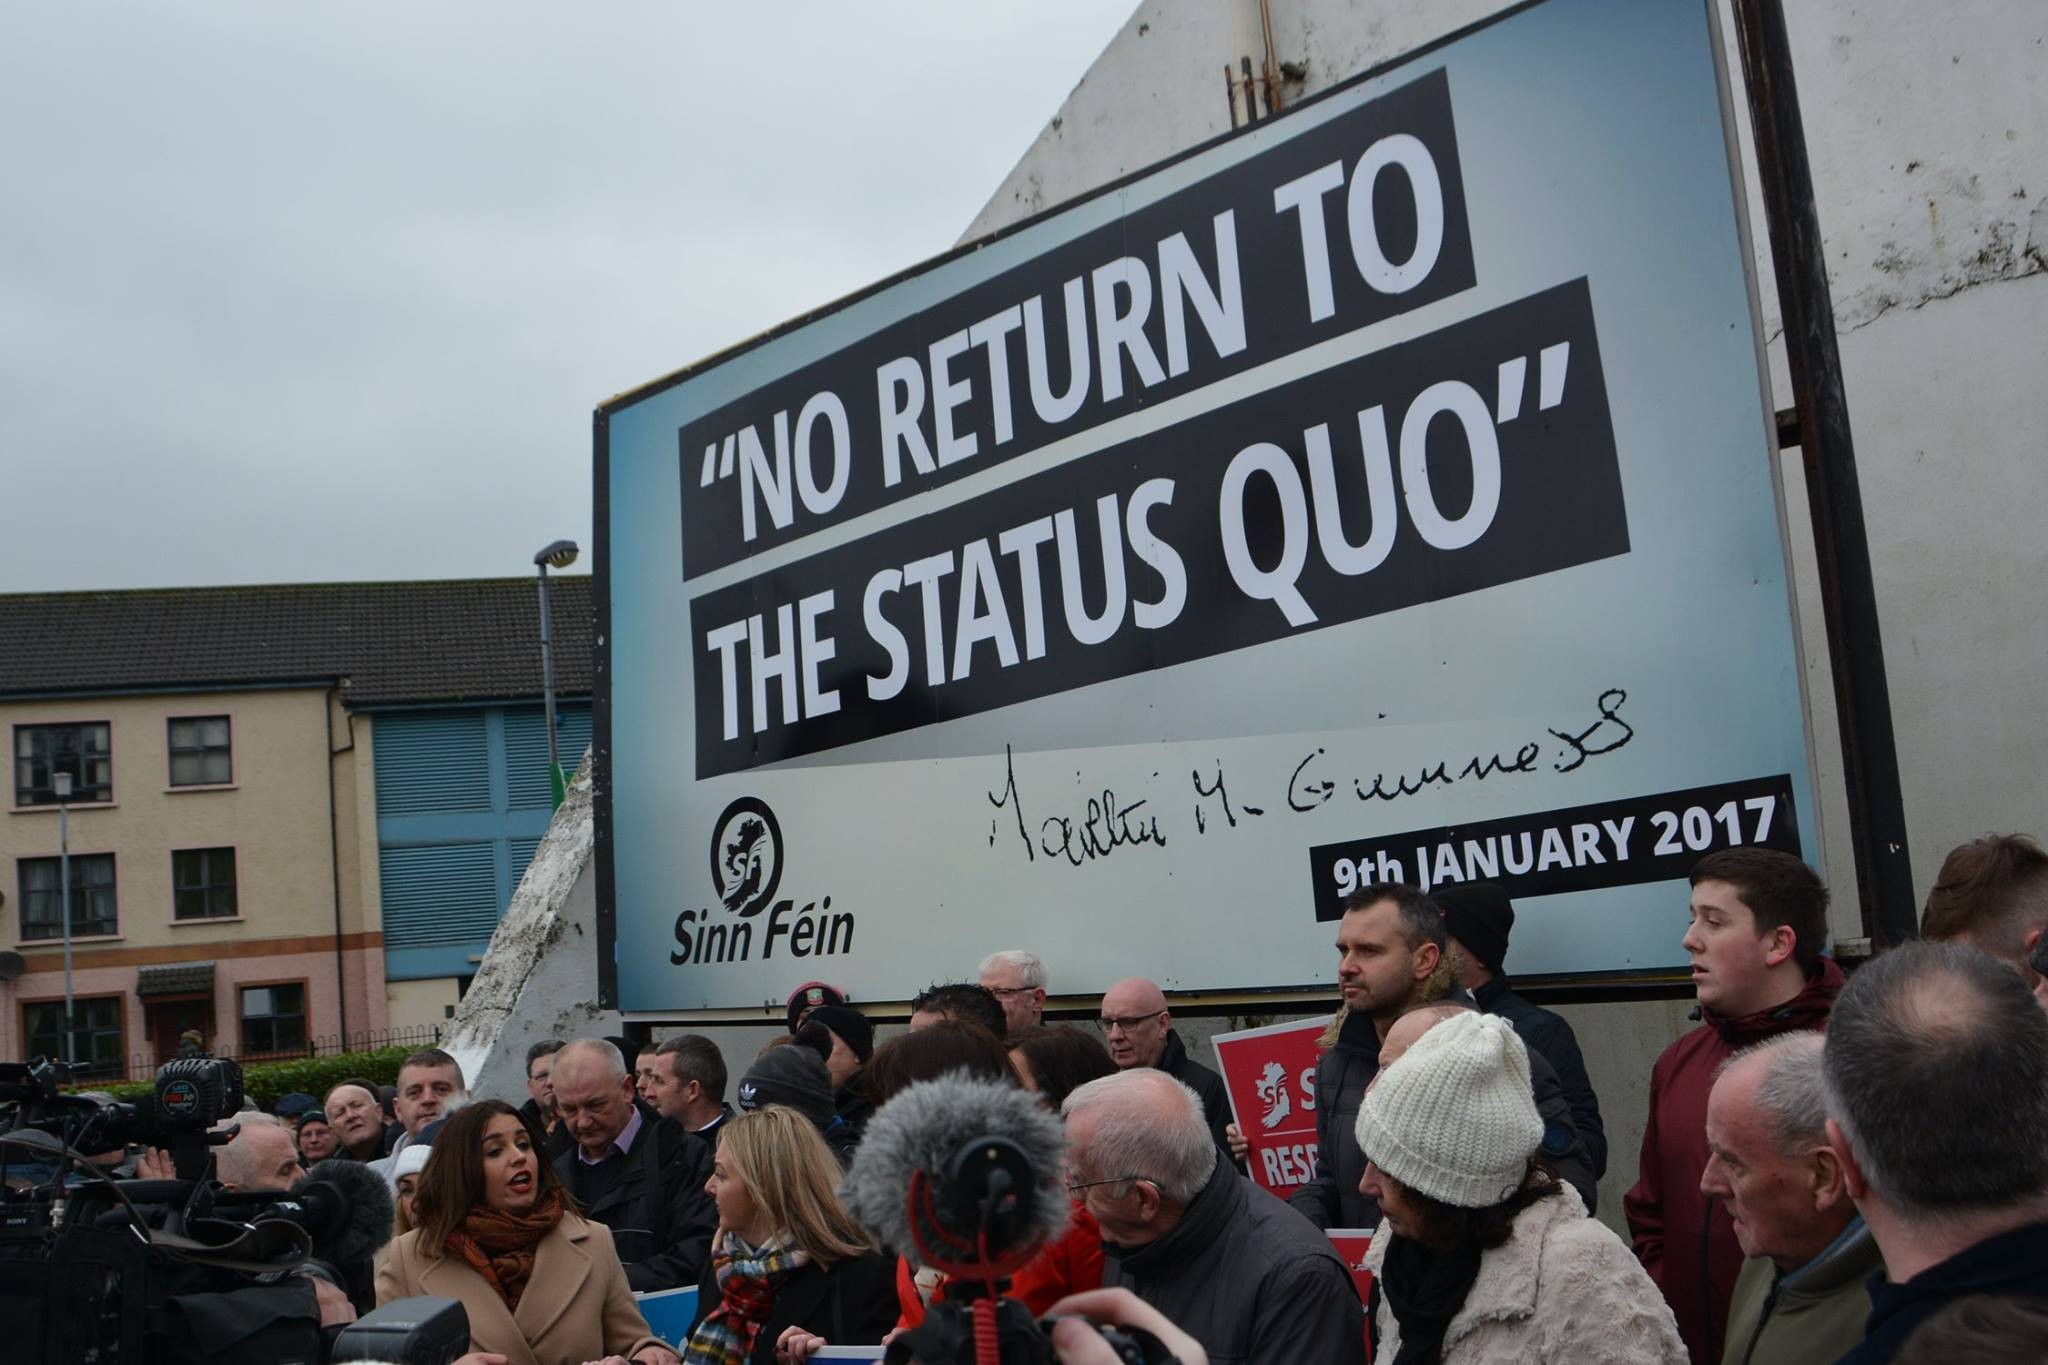 No Return to the Status Quo mural unveiled at Free Derry Corner.